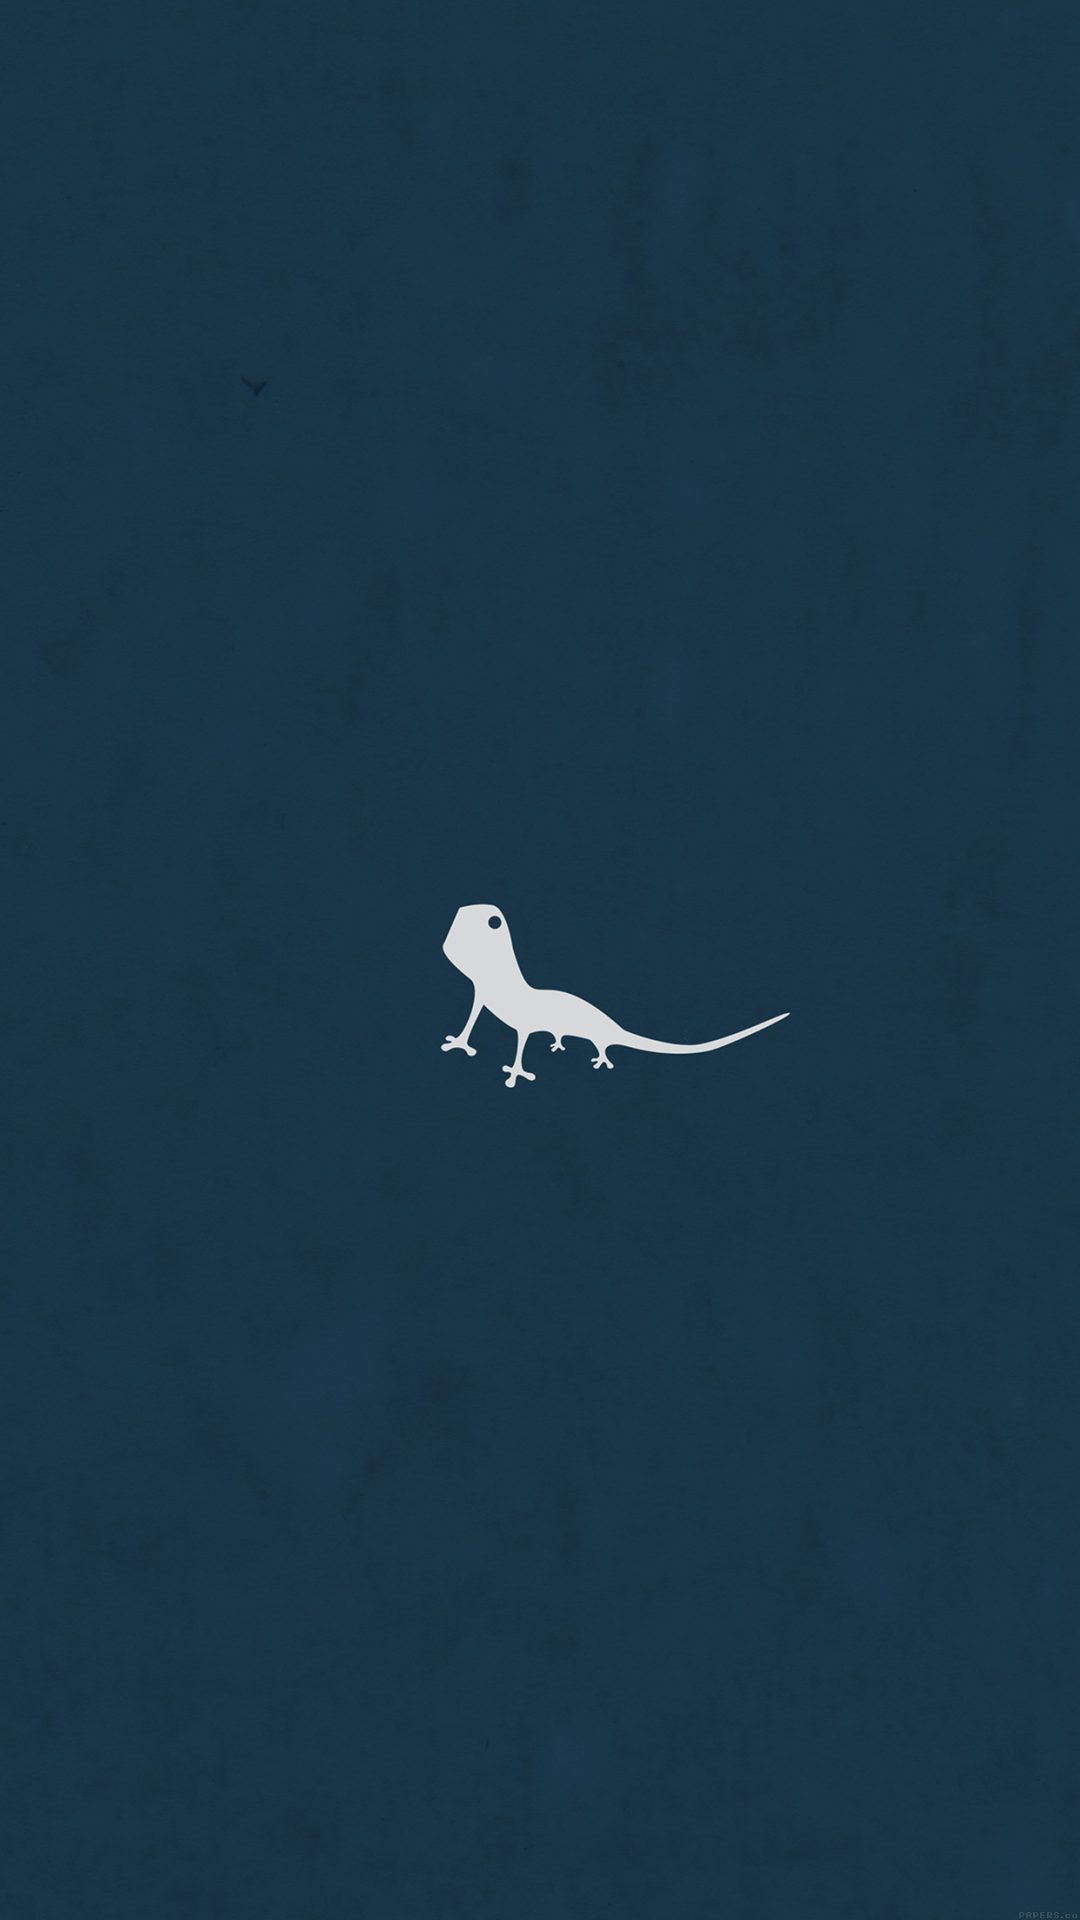 Lizard Blue Animal Minimal Simple Art